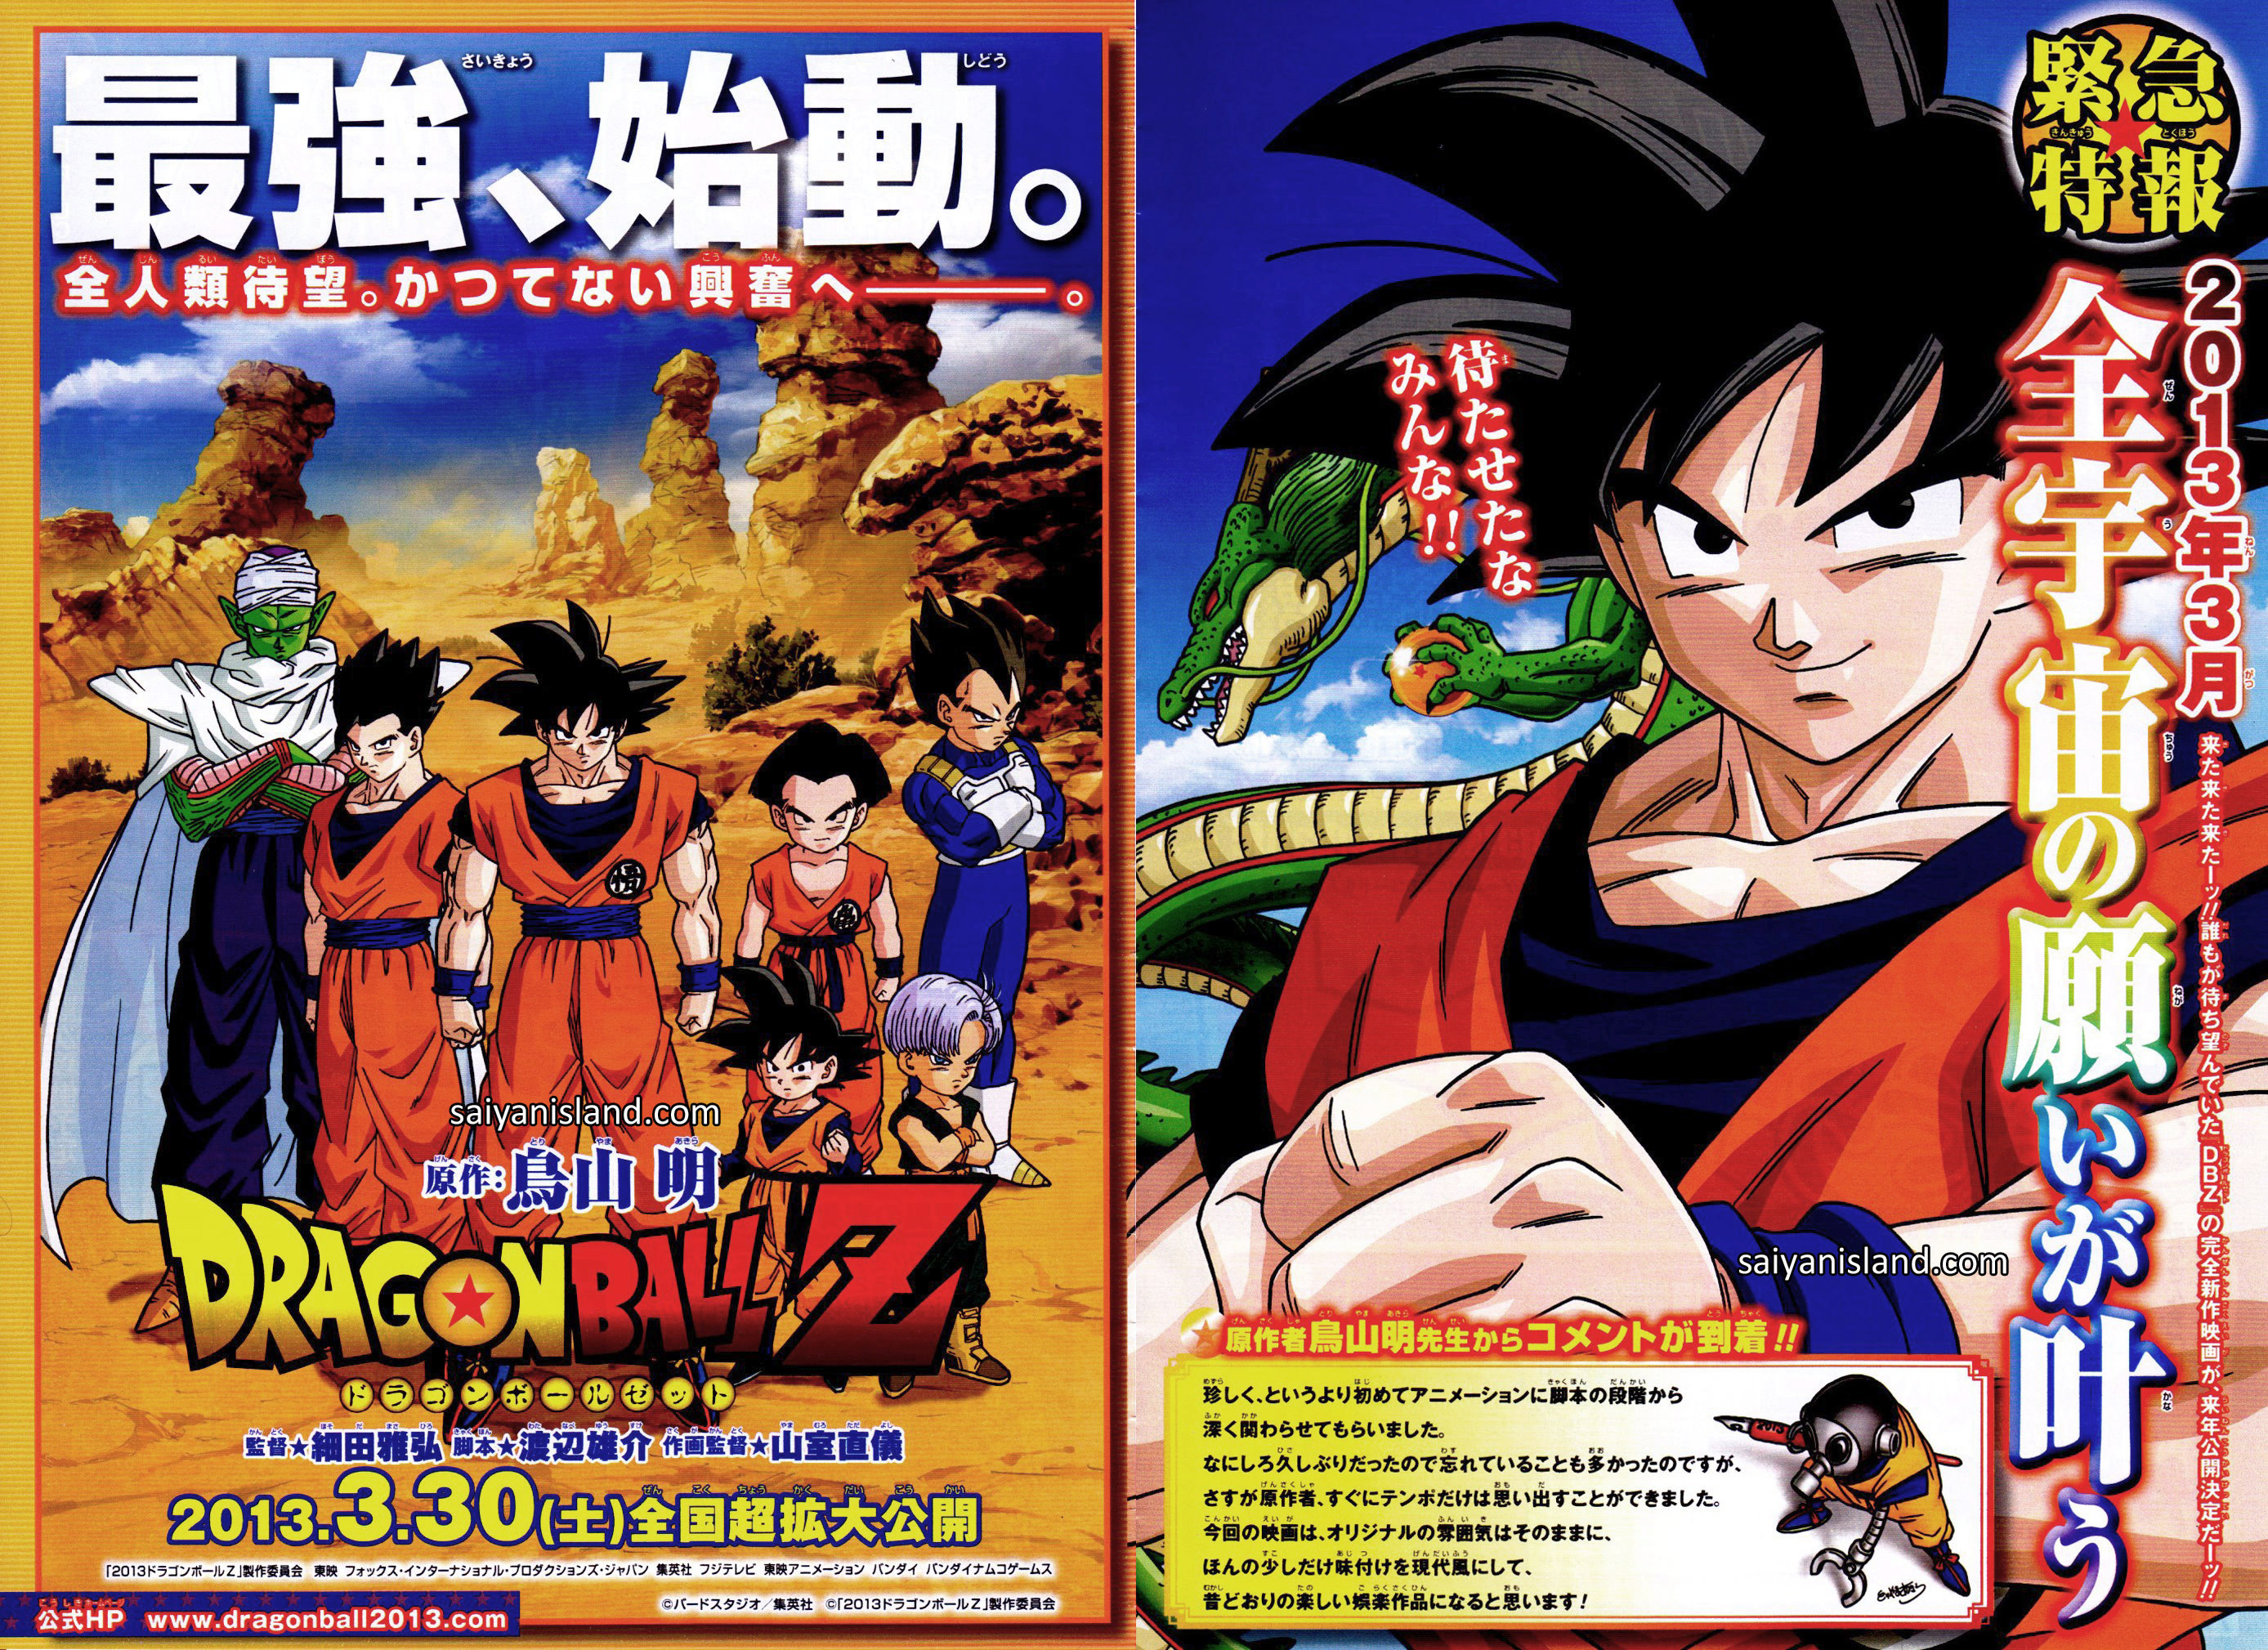 Dragon ball z de retour en 2013 bbbuzz - Dragon ball z site officiel ...